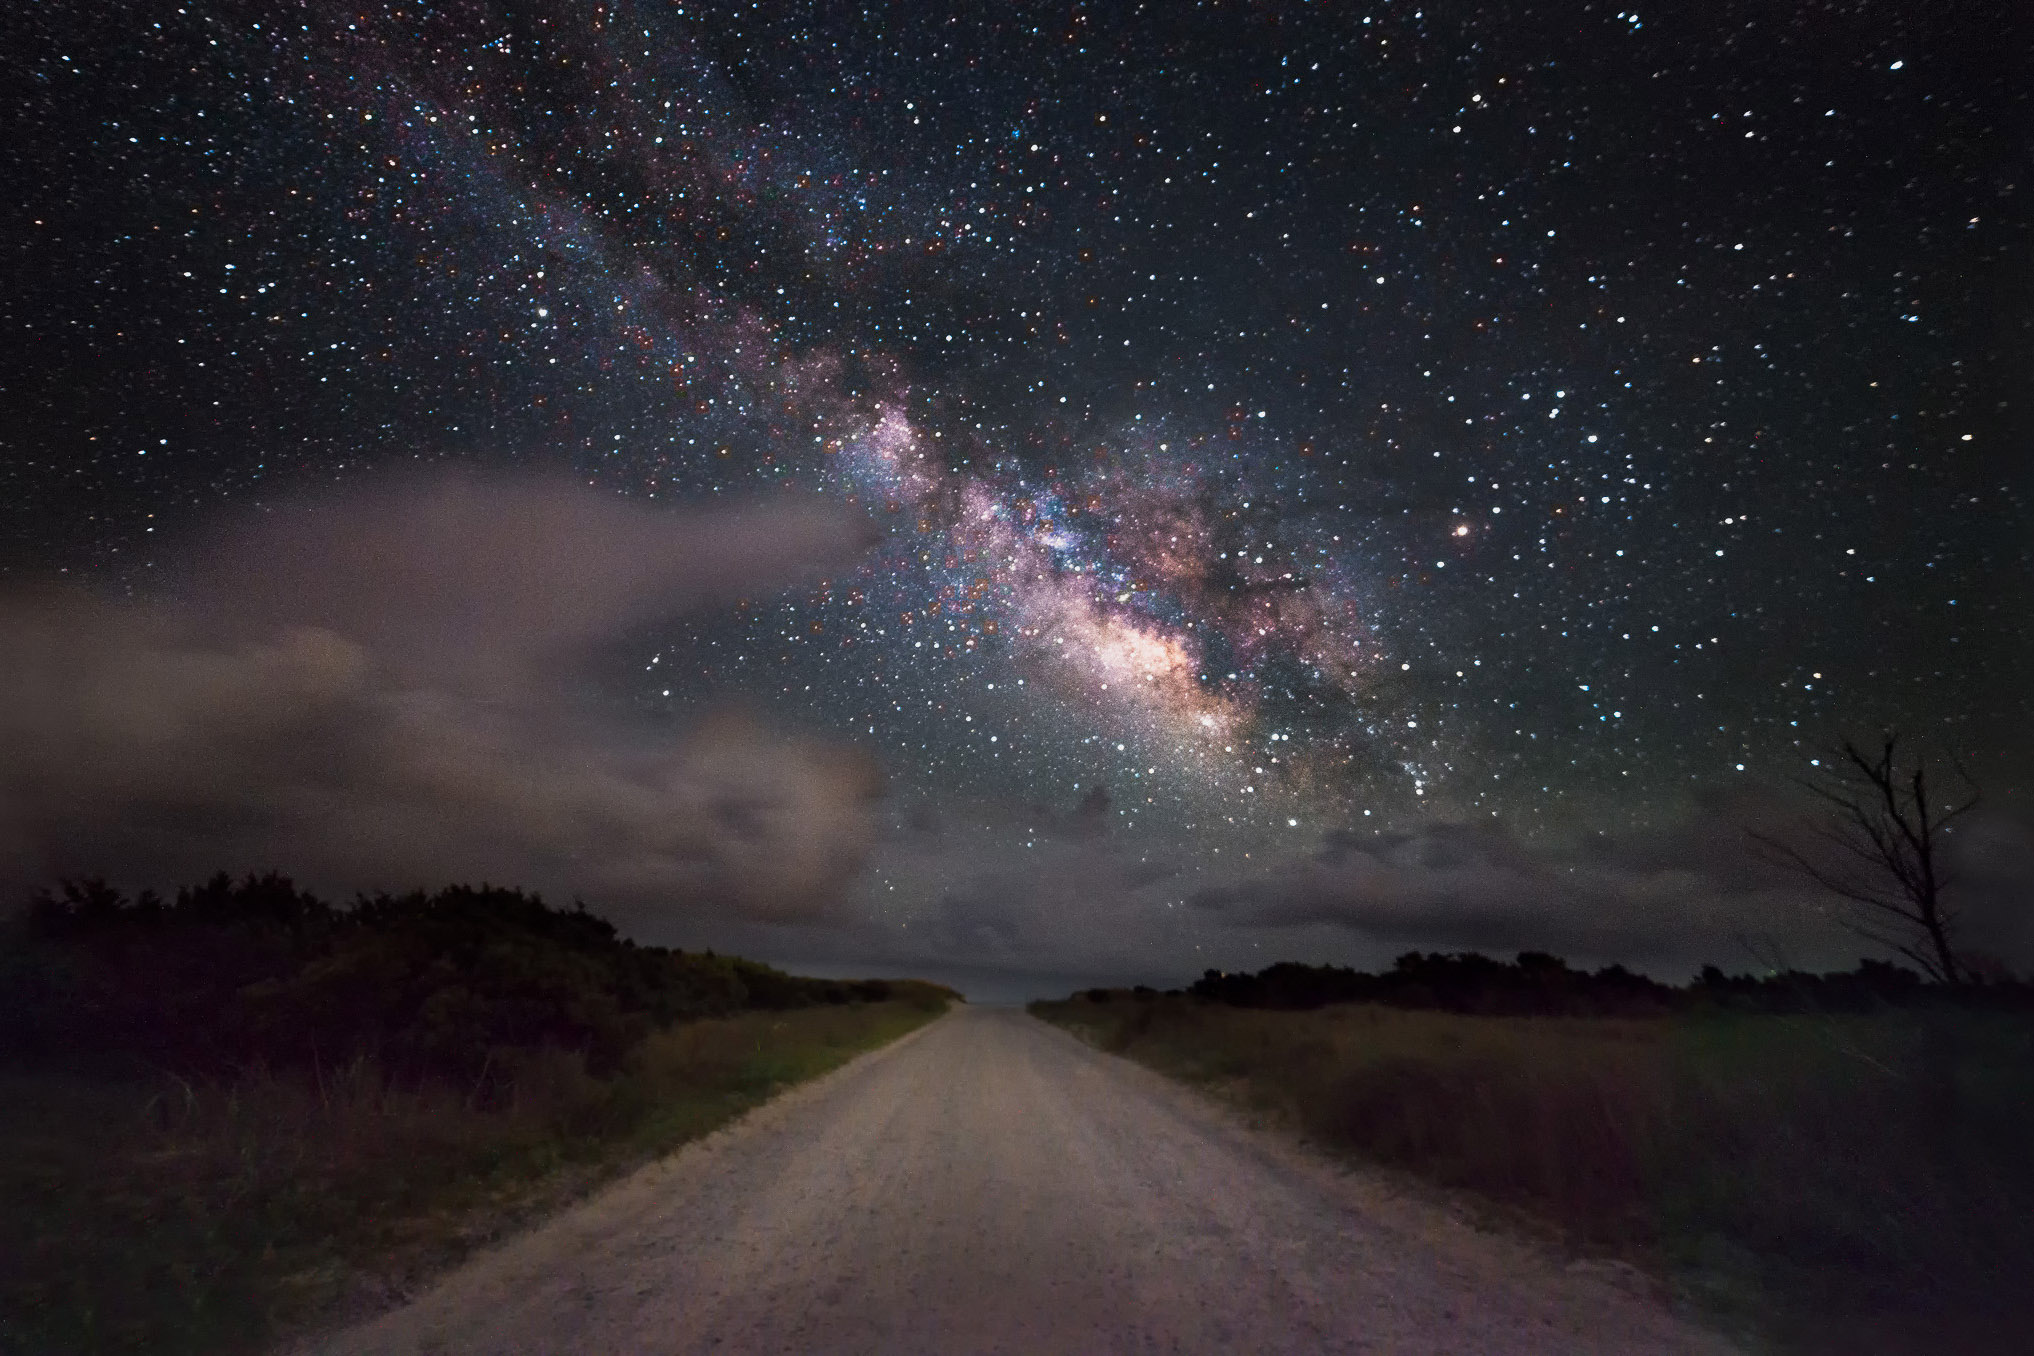 An image of a long dirt road. Above it is the night sky. On the left large white clouds are visible. On the right, the thousands of stars in the milky way.